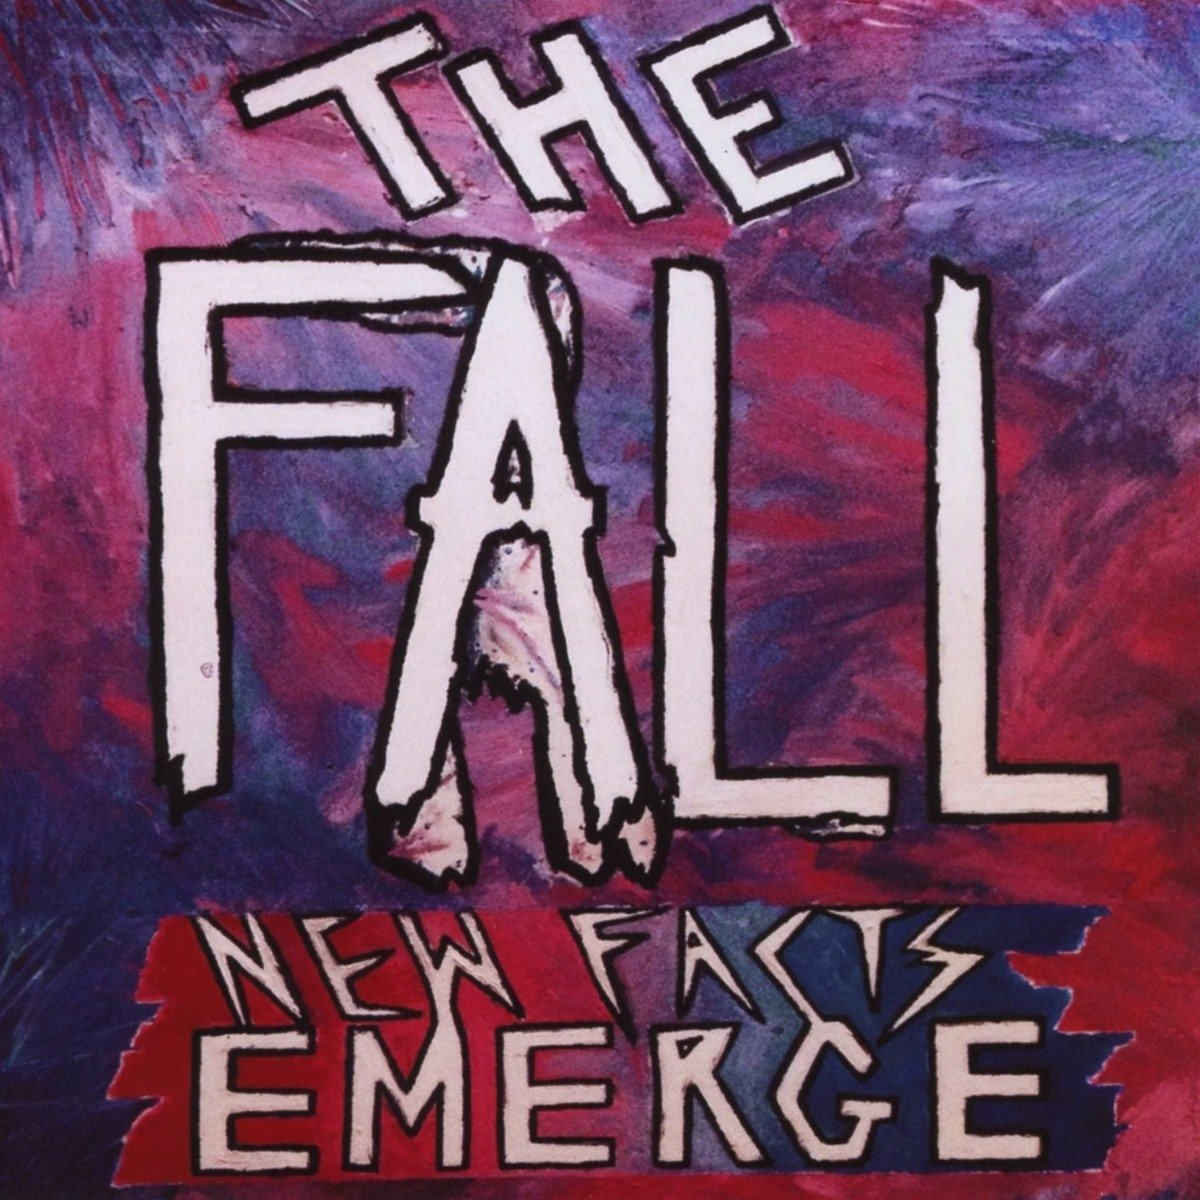 The Fall – New Facts Emerge (Cherry Red)